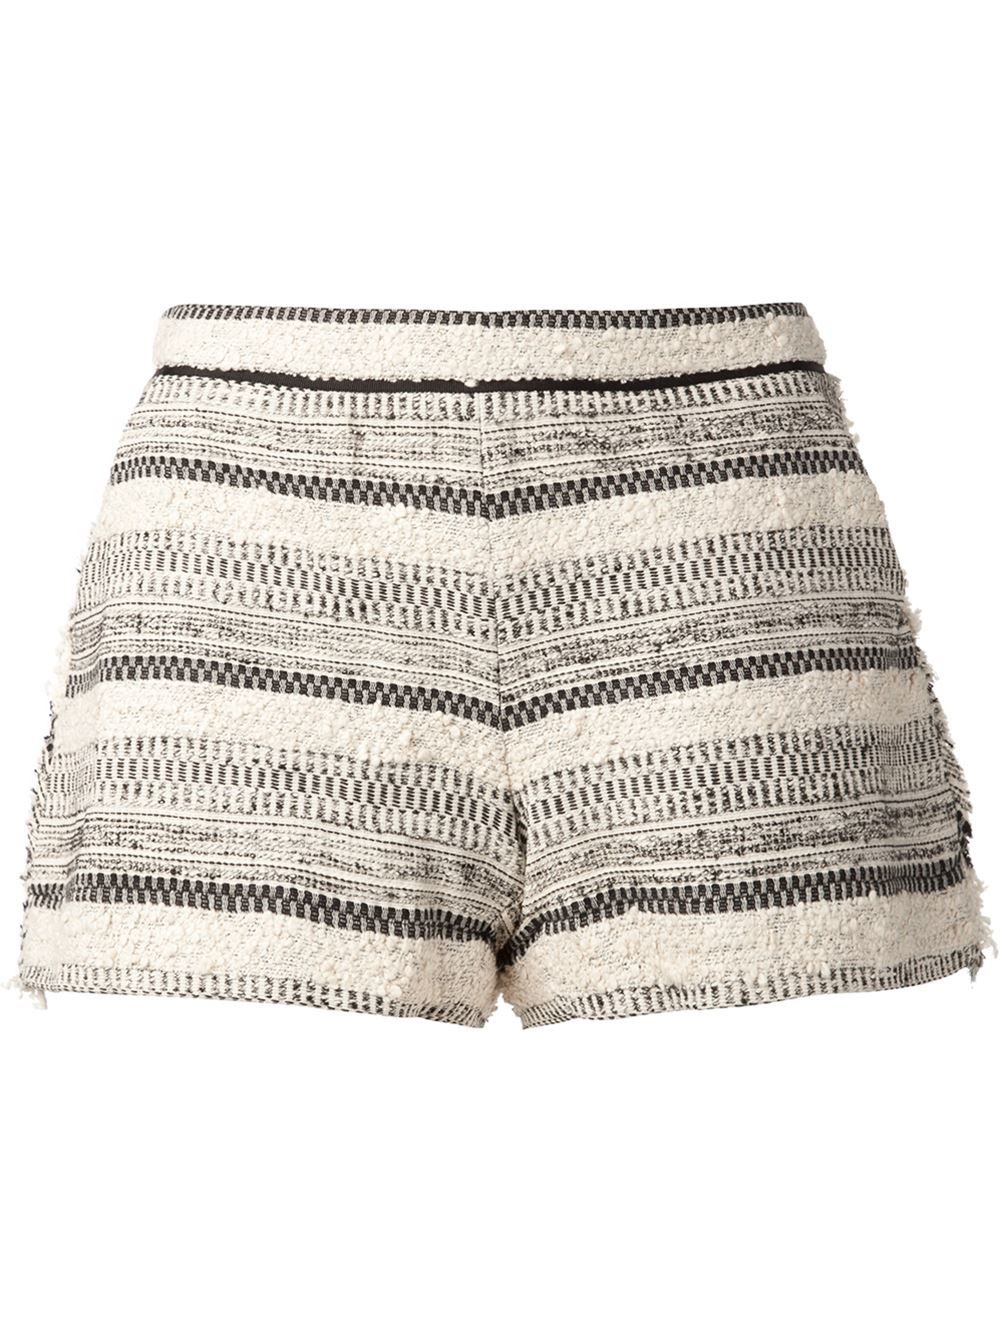 f91ed10239 Tweed Banded Trim Short Patterned Shorts, Striped Shorts, Printed Shorts,  Black And White